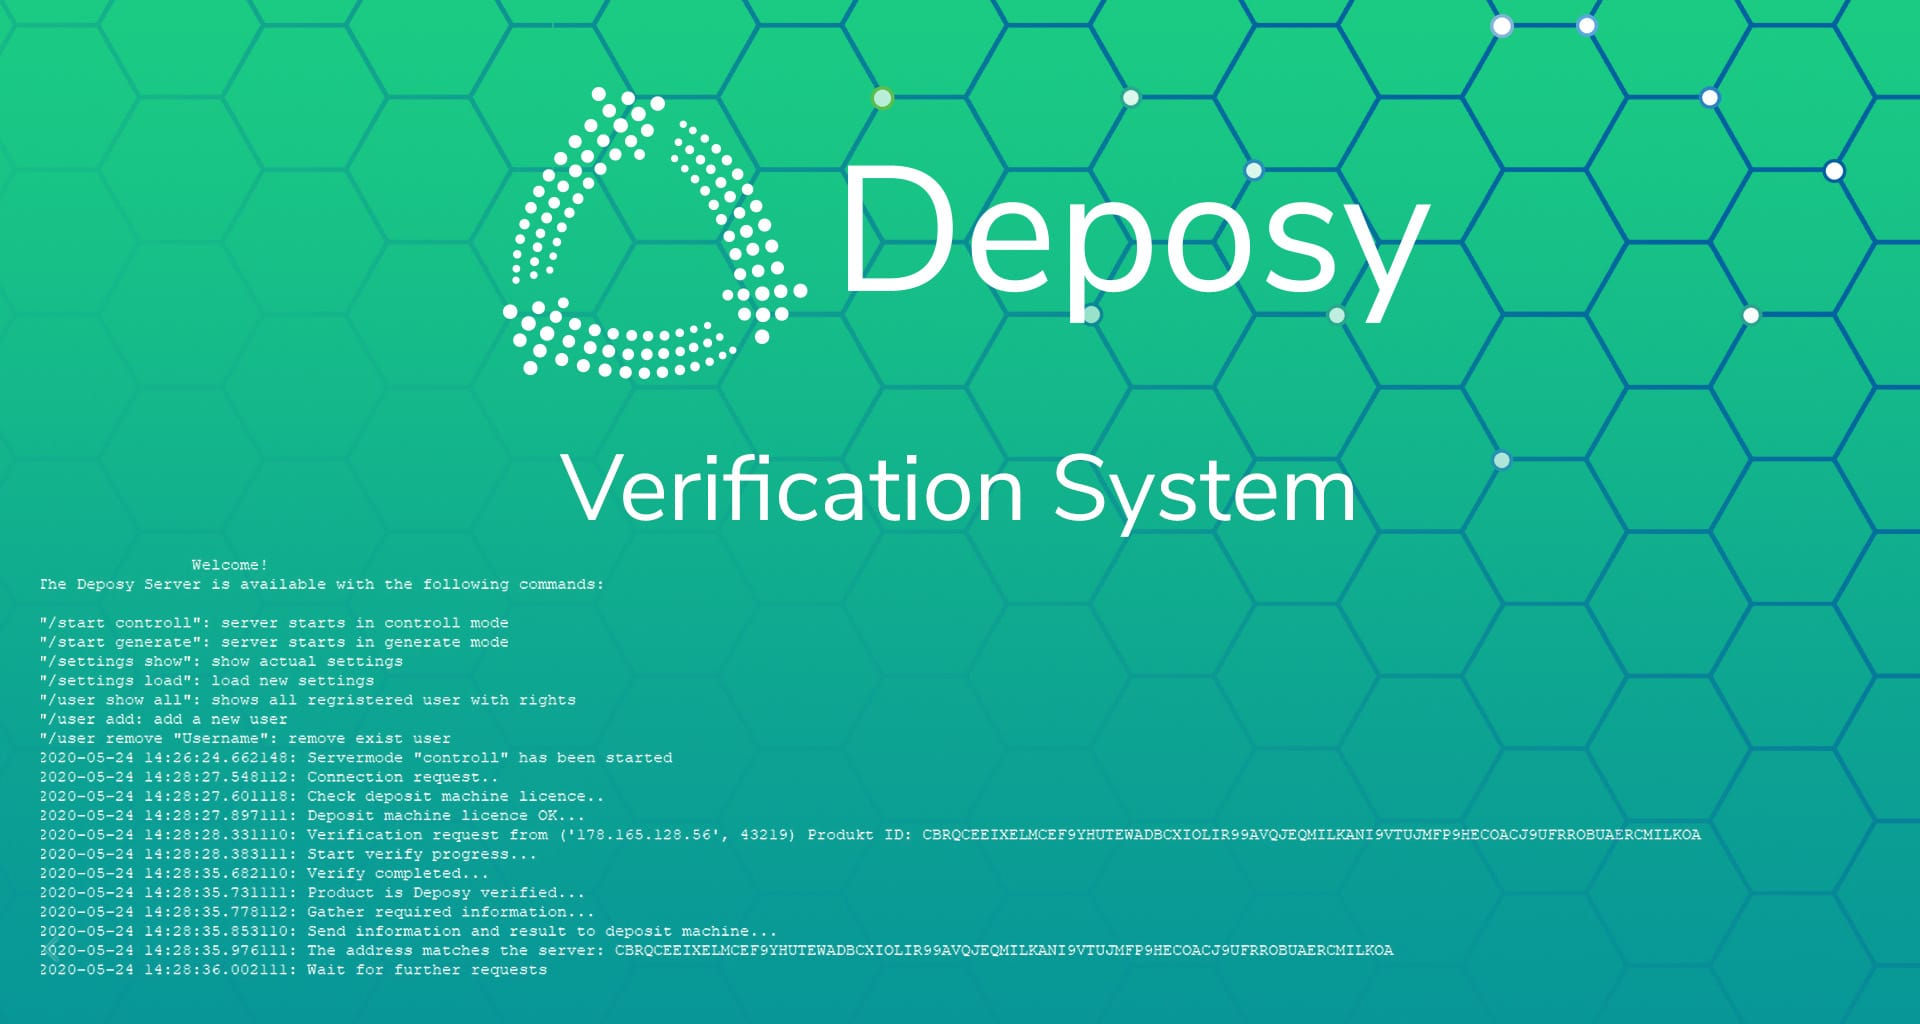 deposy verification system